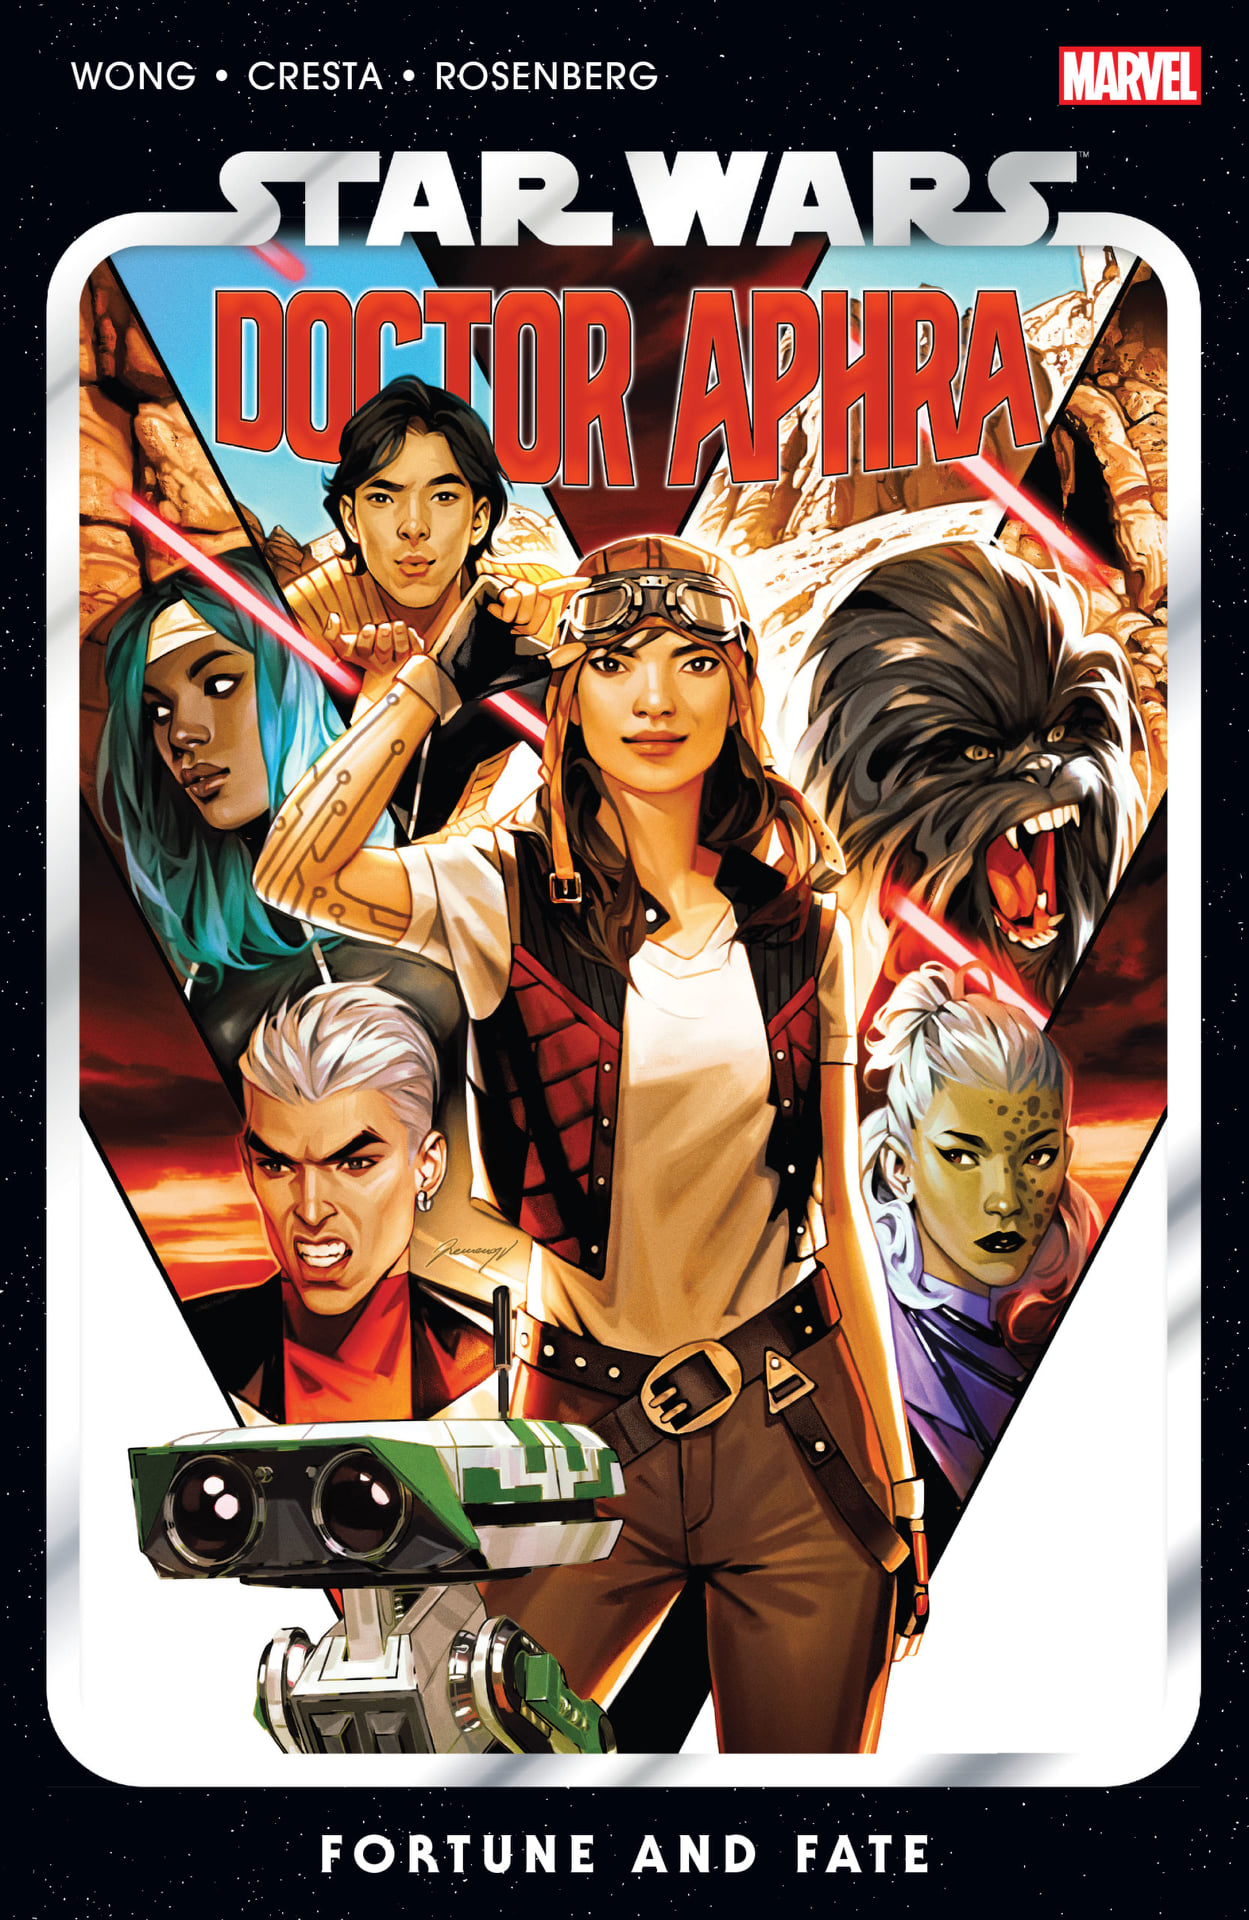 Star Wars Doctor Aphra 1: Fortune and Fate